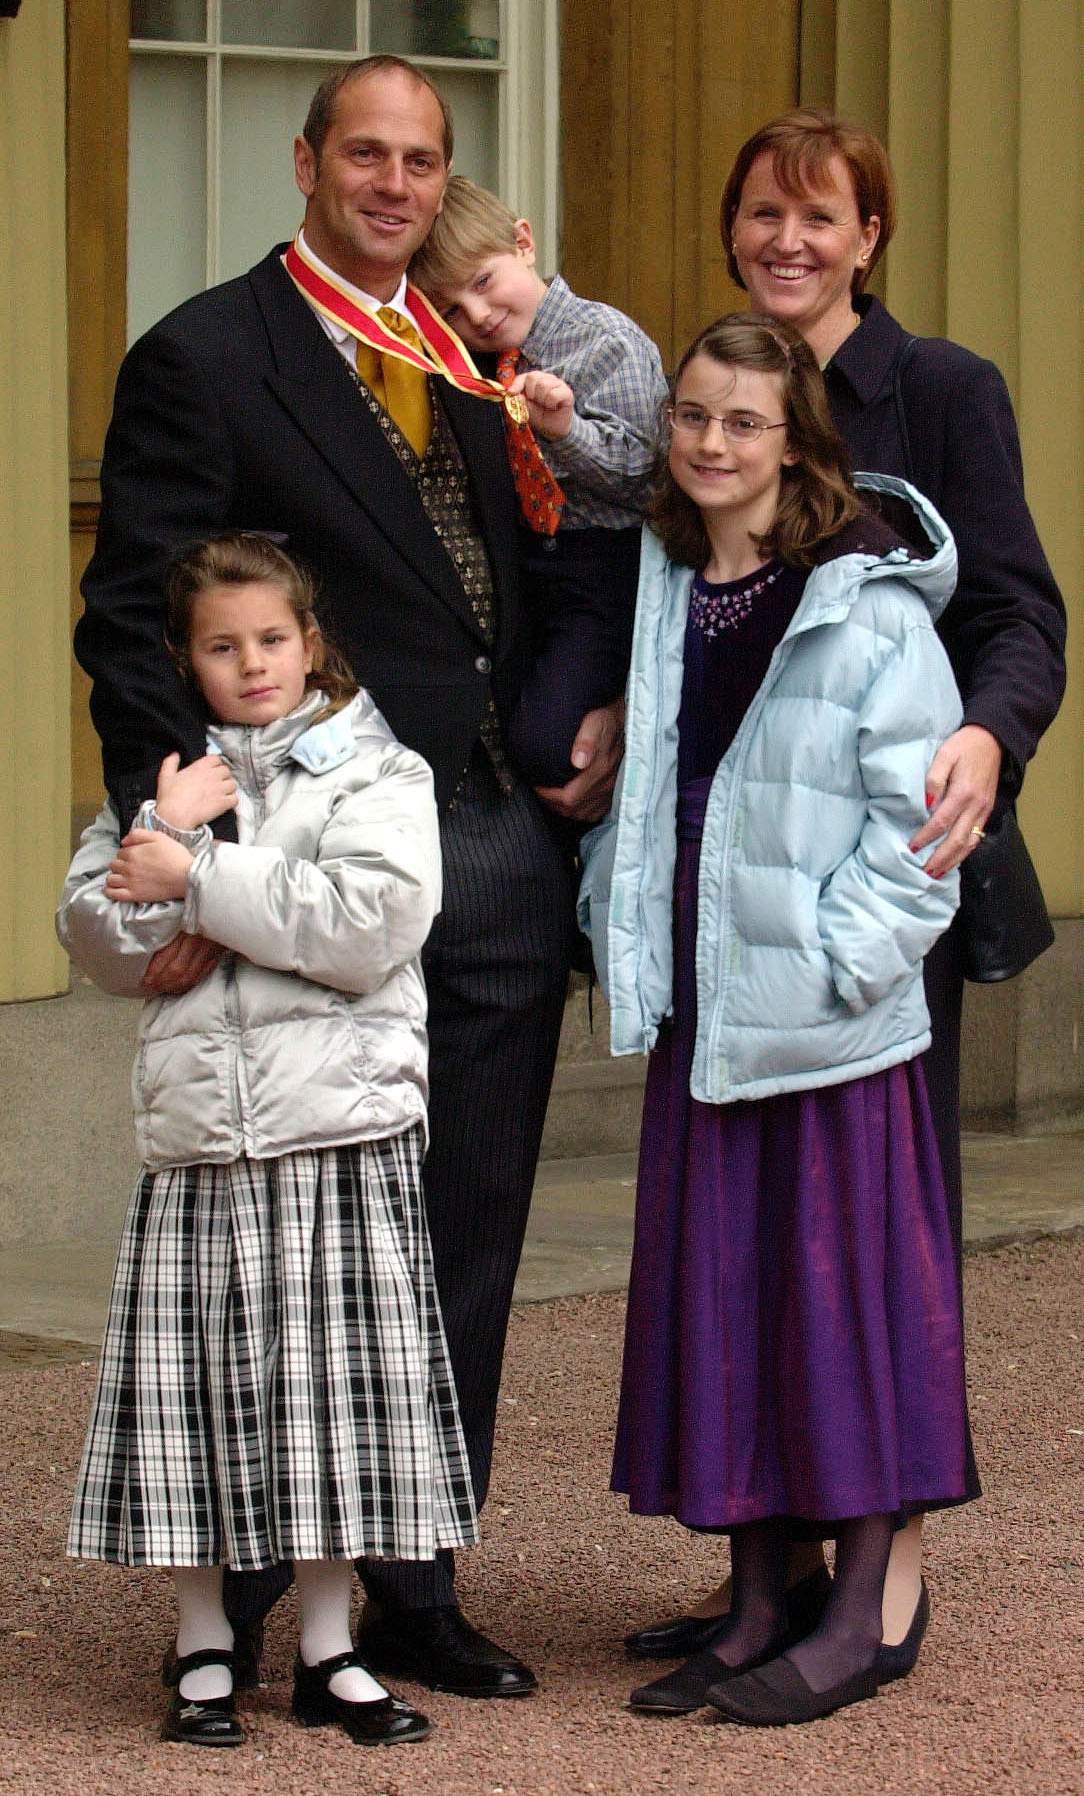 Sir Steven Redgrave with his wife, Lady Redgrave, son Zak, 3 and daughters Sophie, 7, left and Natalie, 9, at Buckingham Palace, London, Tuesday 1st May, 2001, after the 5 times Olympic gold medallist, received a Knight Batchelor from Britain's Queen Elizabeth II. in 2001 (Fiona Hanson/PA)